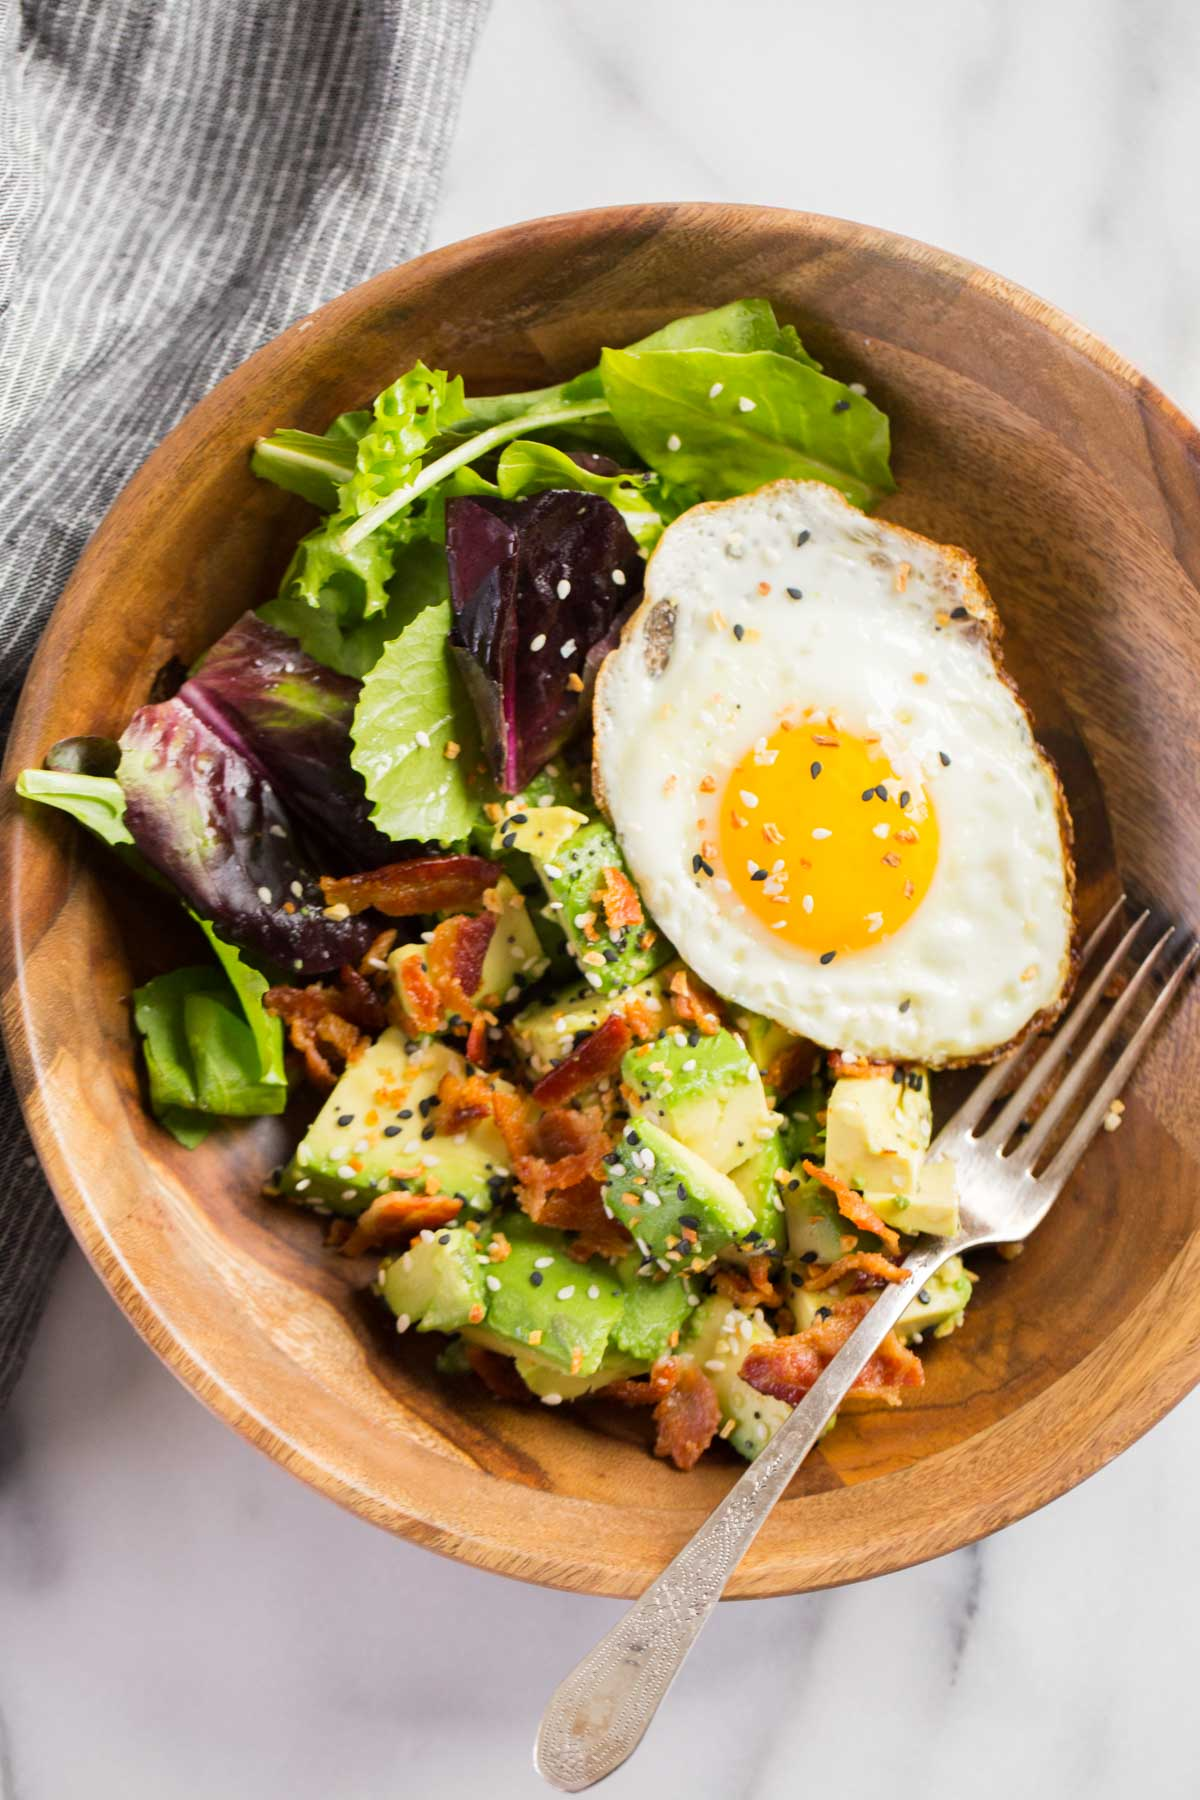 Avocado Breakfast Bowl in a wood bowl with a fork.